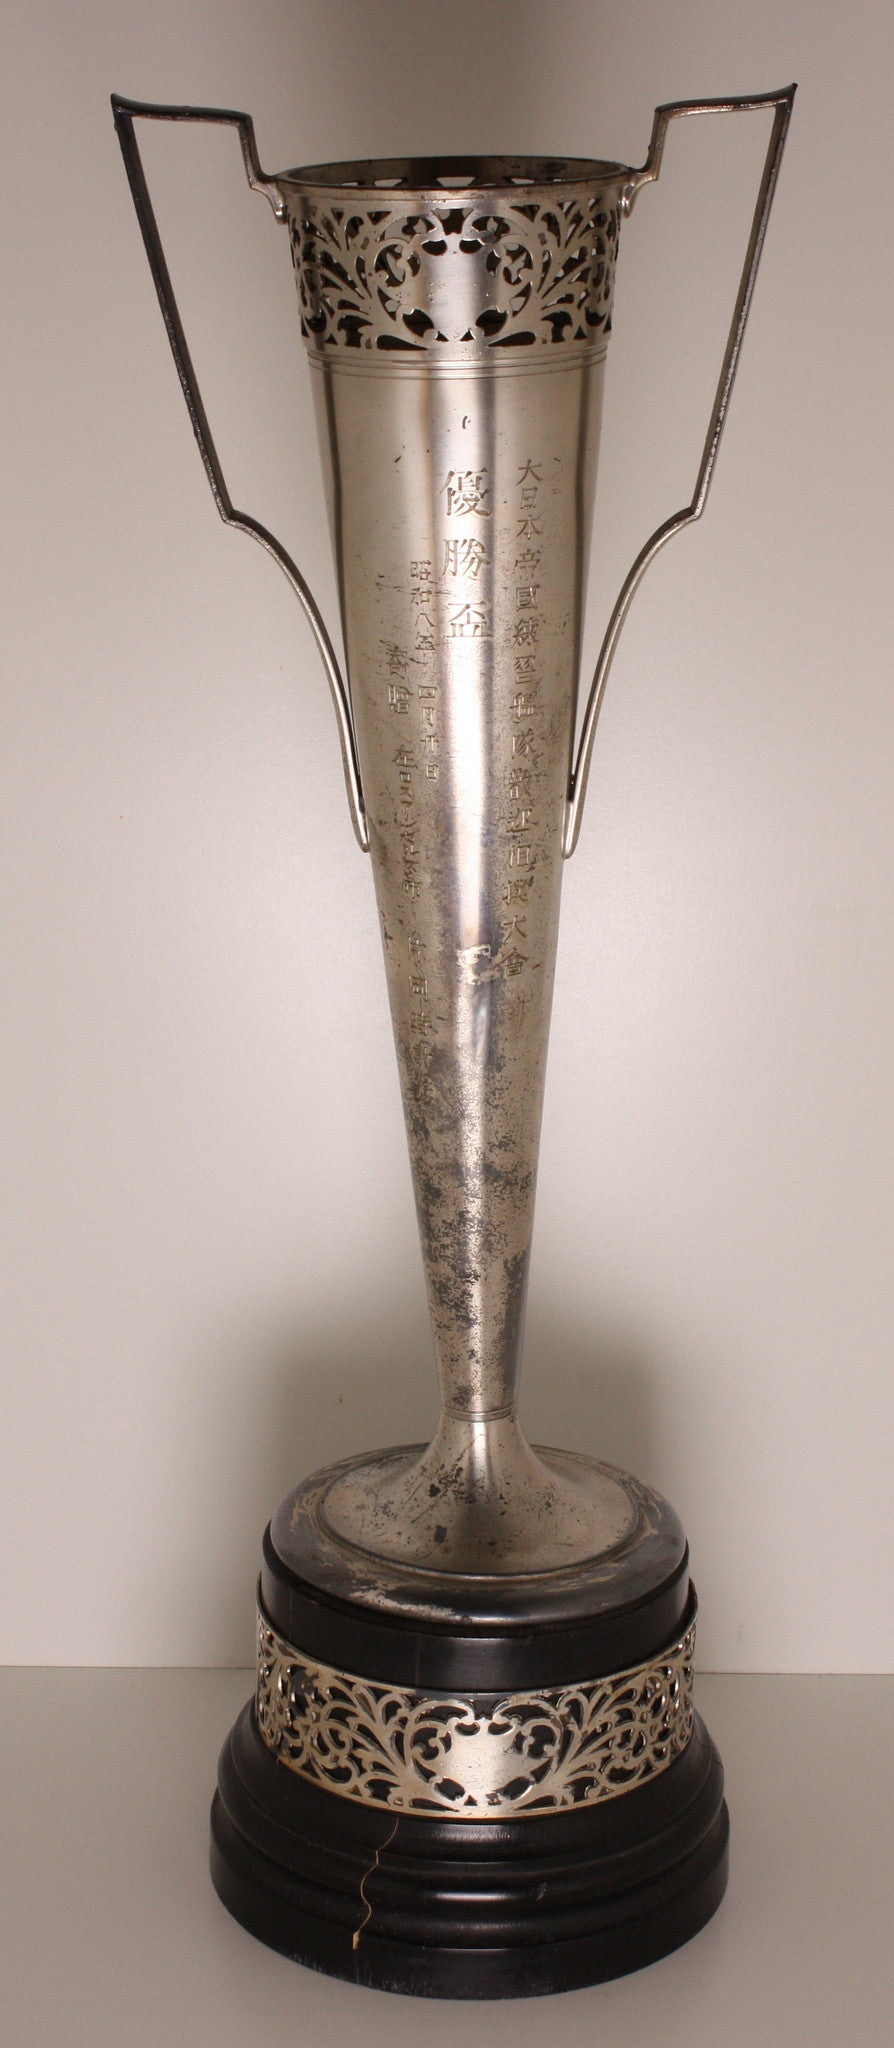 Very Rare 1933 Imperial Japanese Navy Training Fleet Los Angeles Visit Sumo Competition Award Trophy